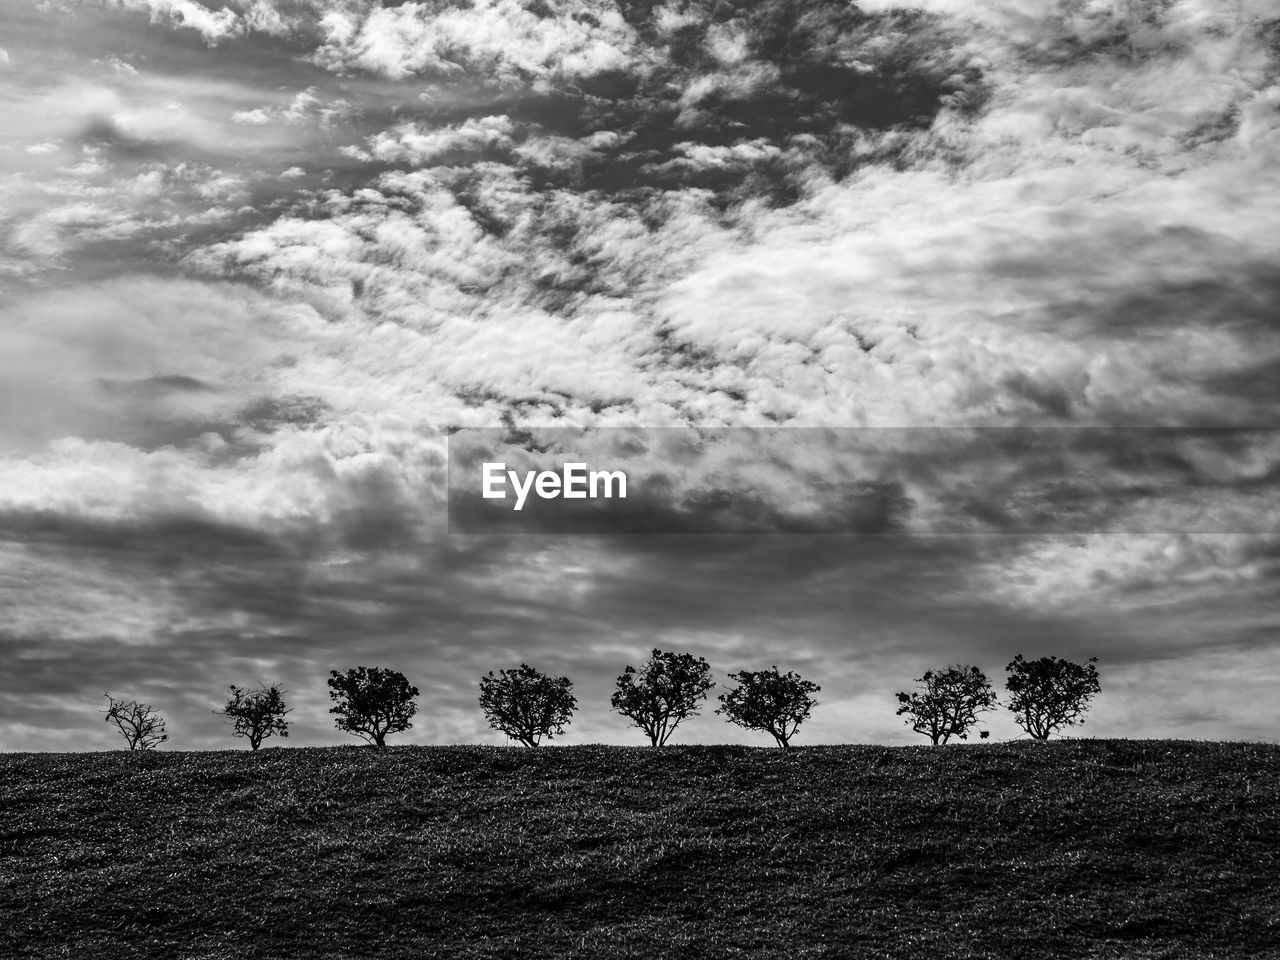 cloud - sky, sky, plant, tree, beauty in nature, land, landscape, tranquility, environment, tranquil scene, nature, field, scenics - nature, day, growth, outdoors, non-urban scene, no people, grass